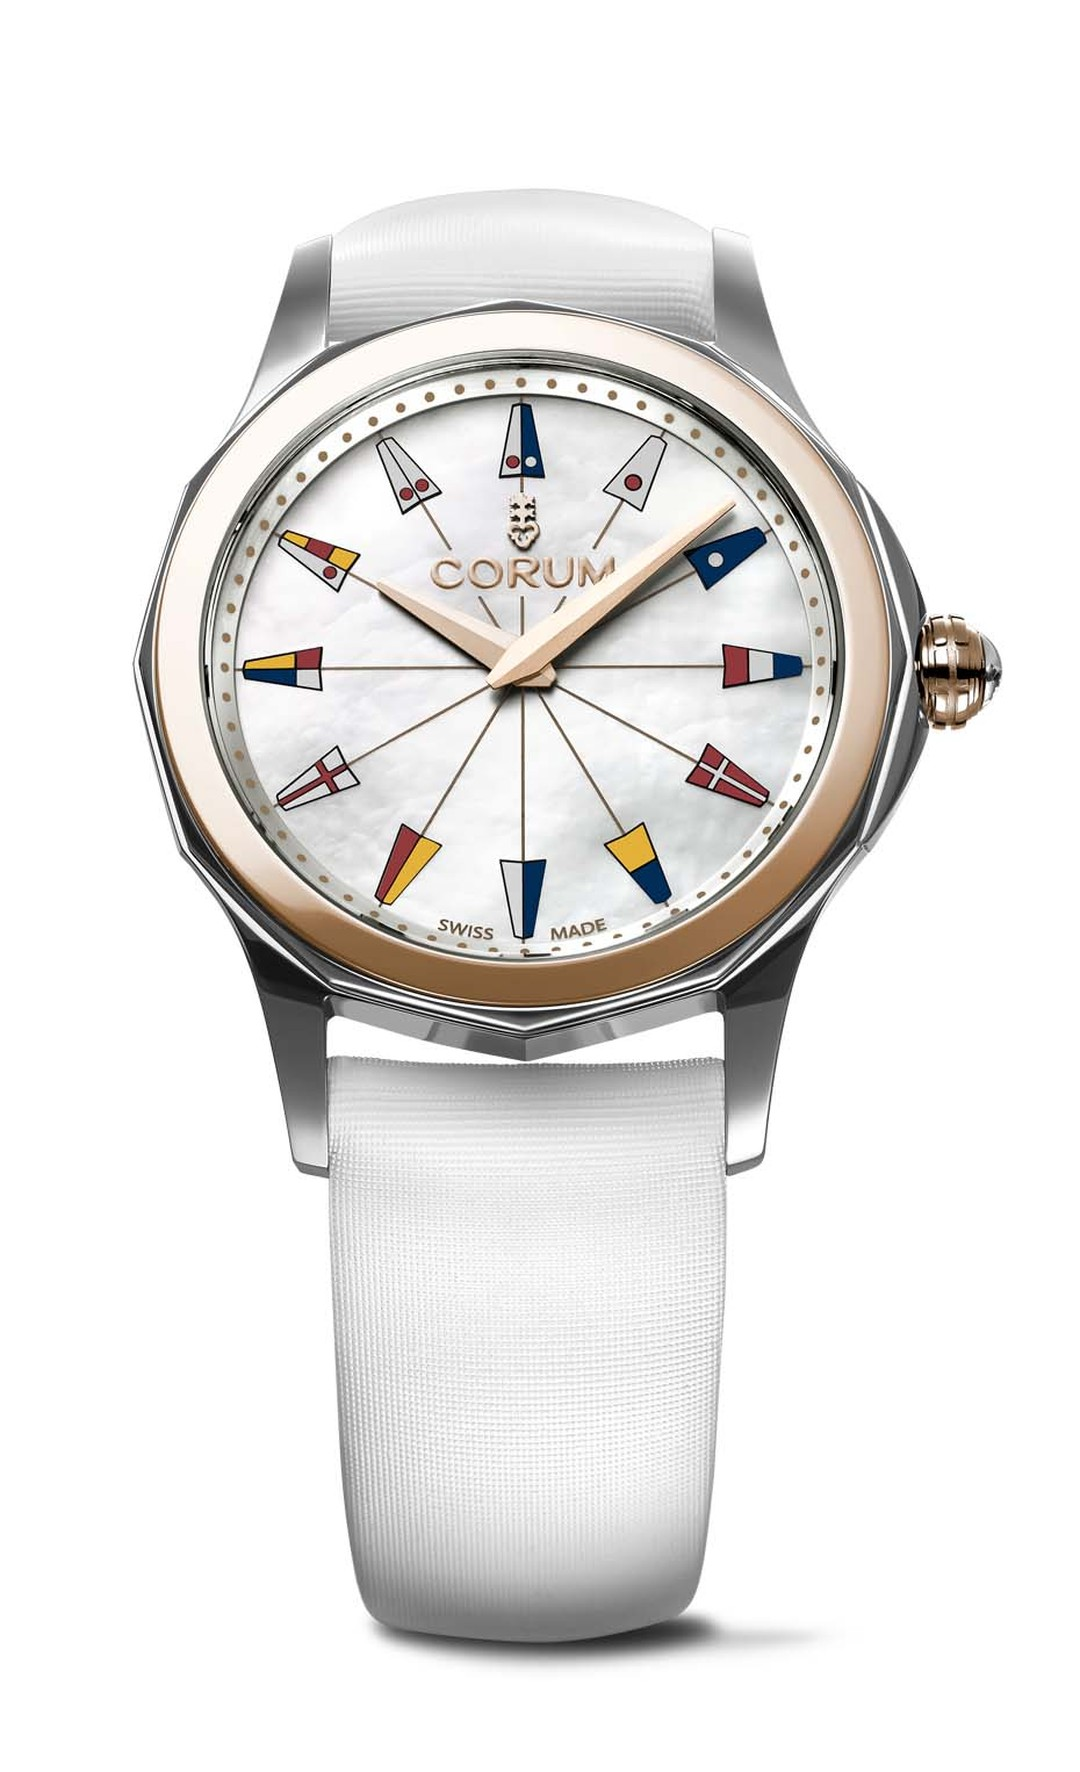 Corum watches Admiral's Cup Legend Lady 32mm displays the unmistakable profile of the iconic Admiral's Cup watch. In addition to the feminine mother-of-pearl dial and gold bezel, the ladies' watch comes on a white satin strap and keeps time with a carefre